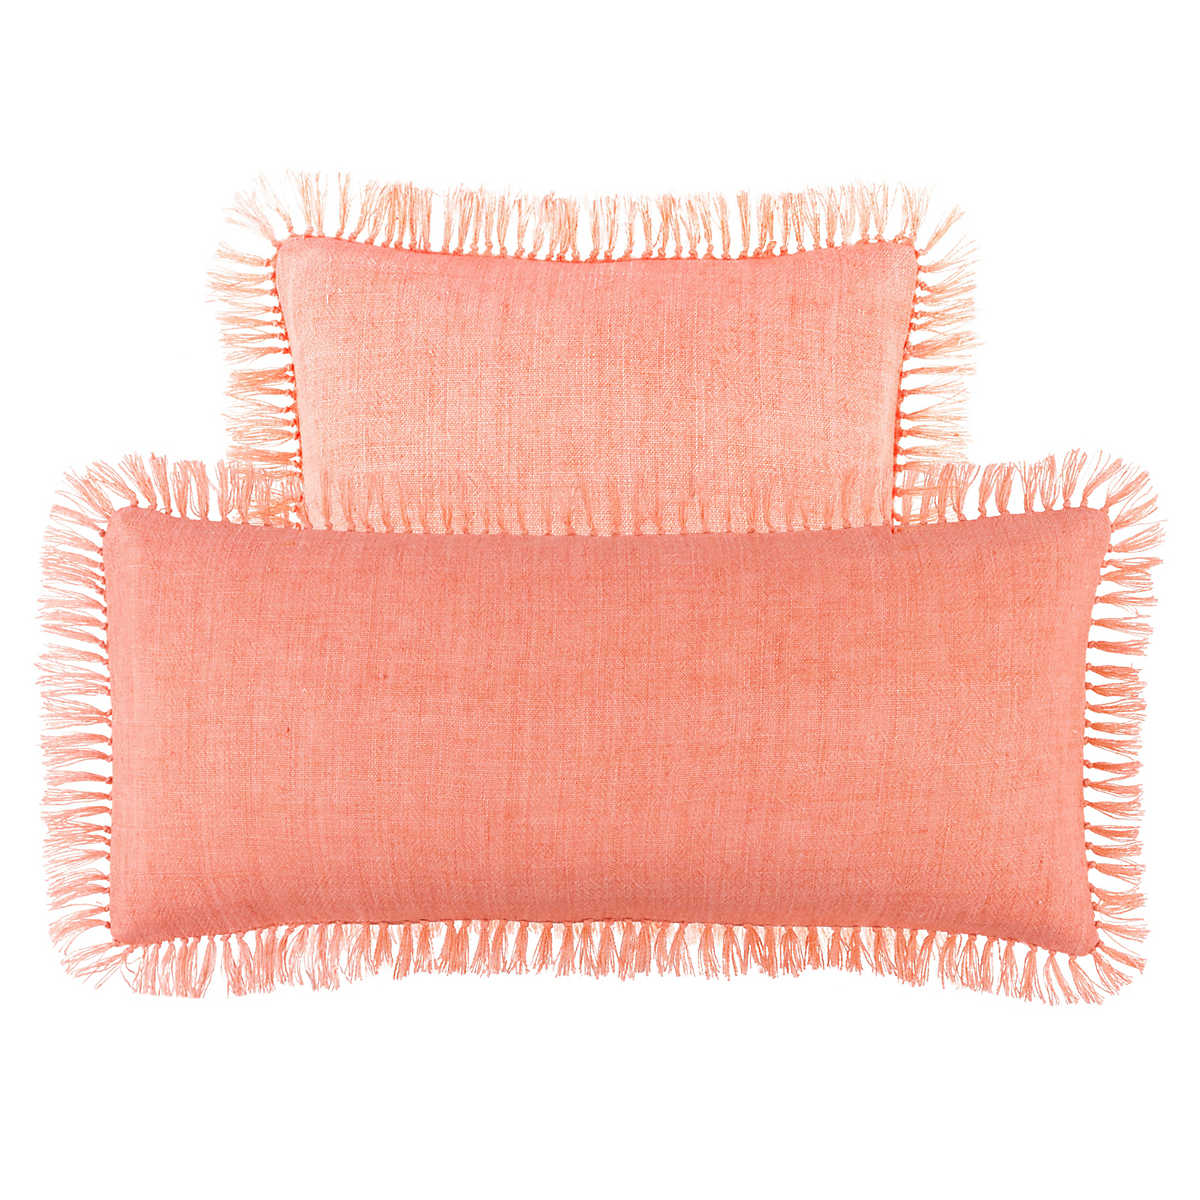 Laundered Linen Coral Decorative Pillow Pine Cone Hill